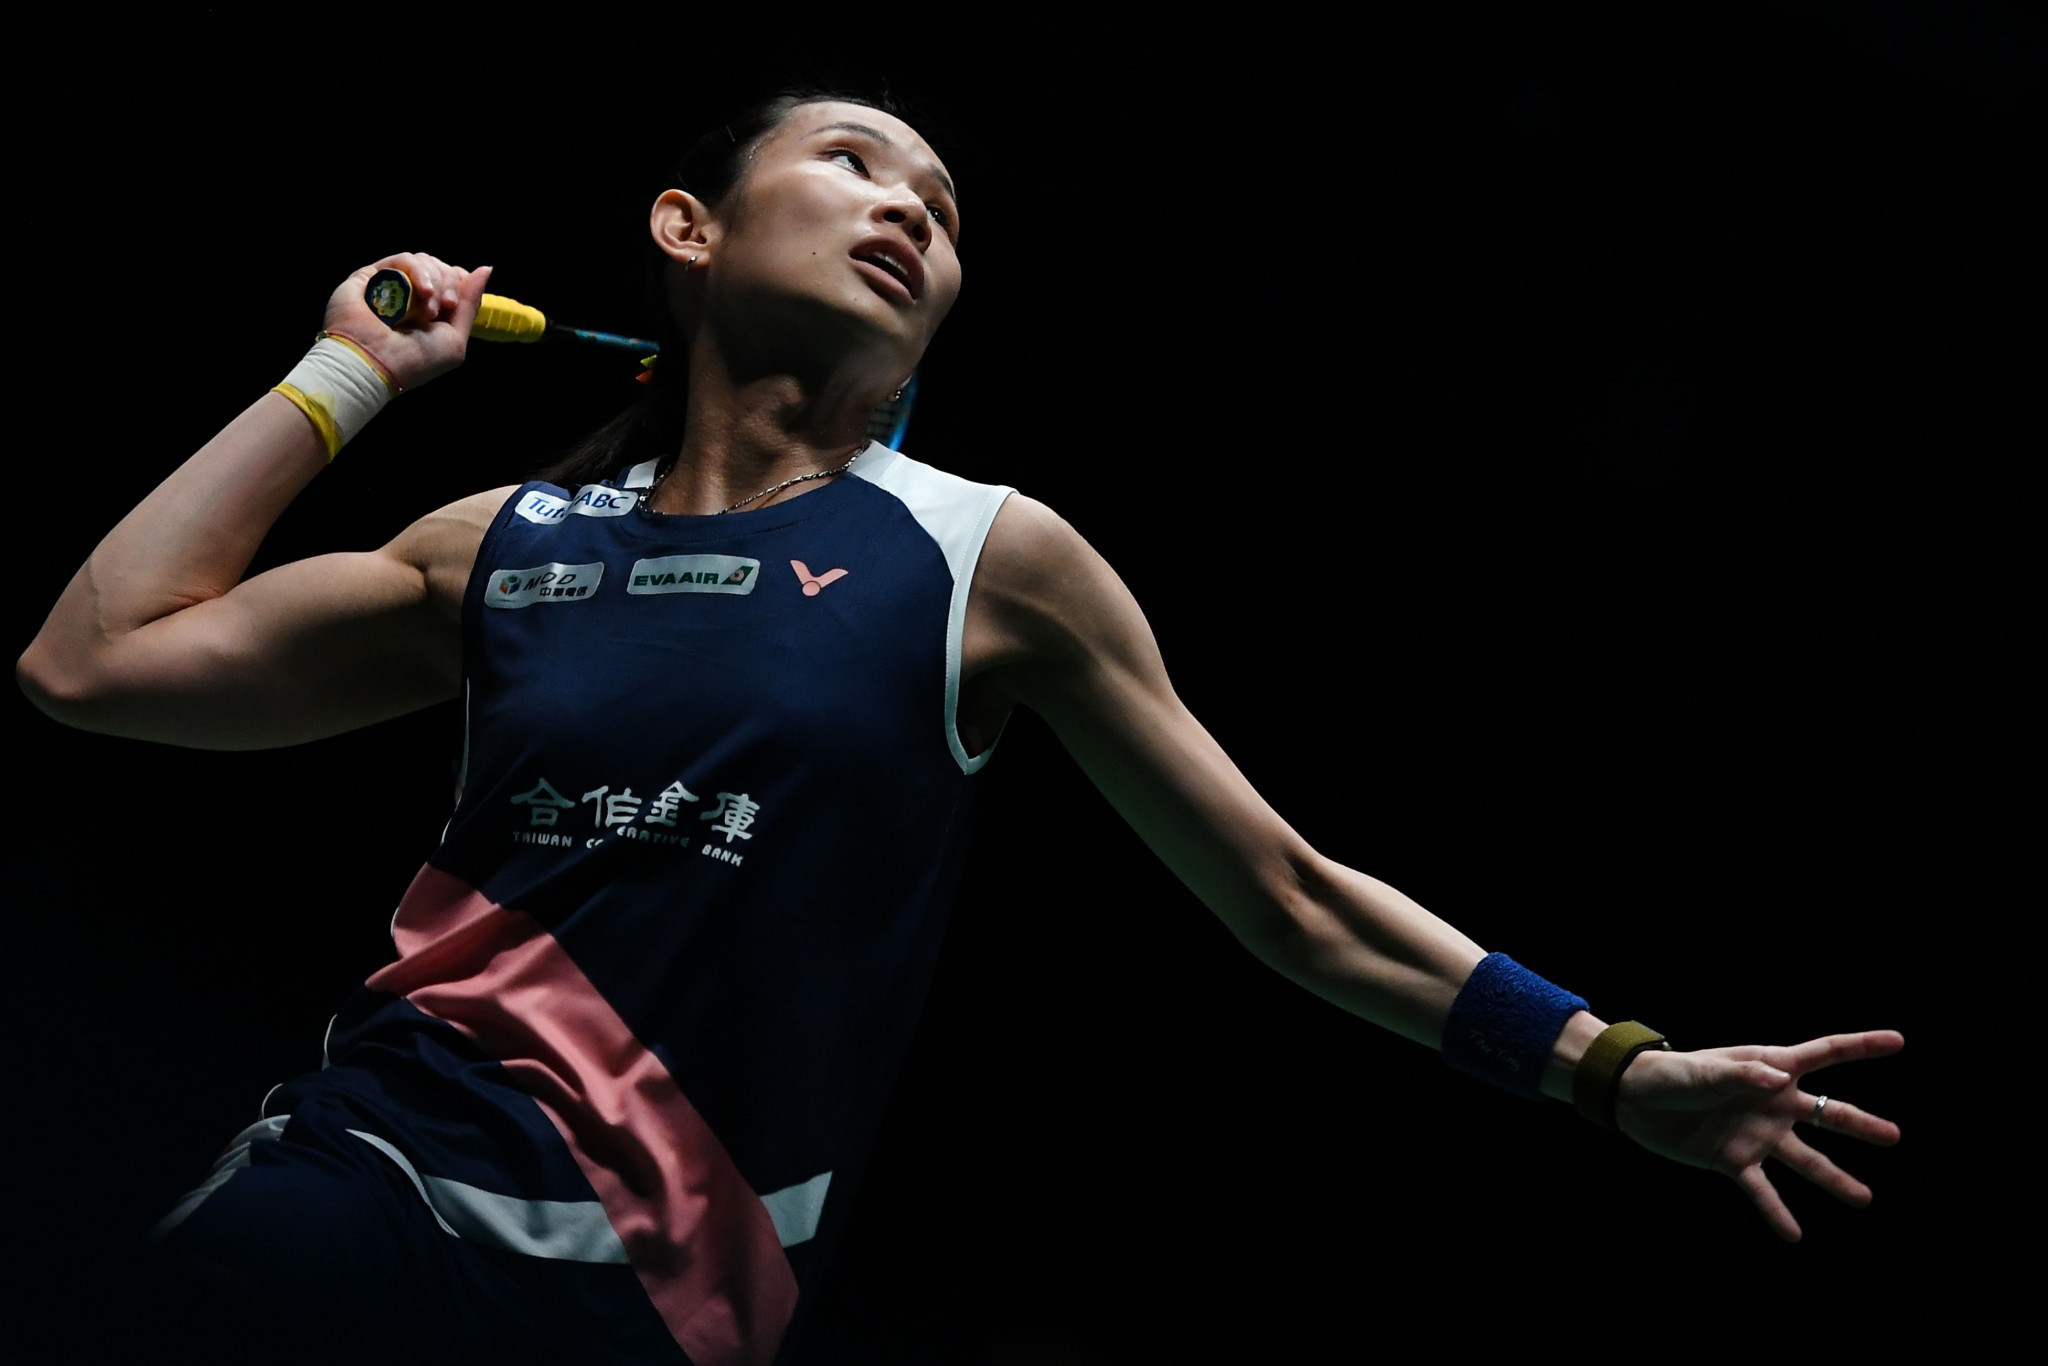 Chinese Taipei's Tai Tzu-ying advanced to the Malaysia Open final with victory over China's Chen Yufei ©Getty Images